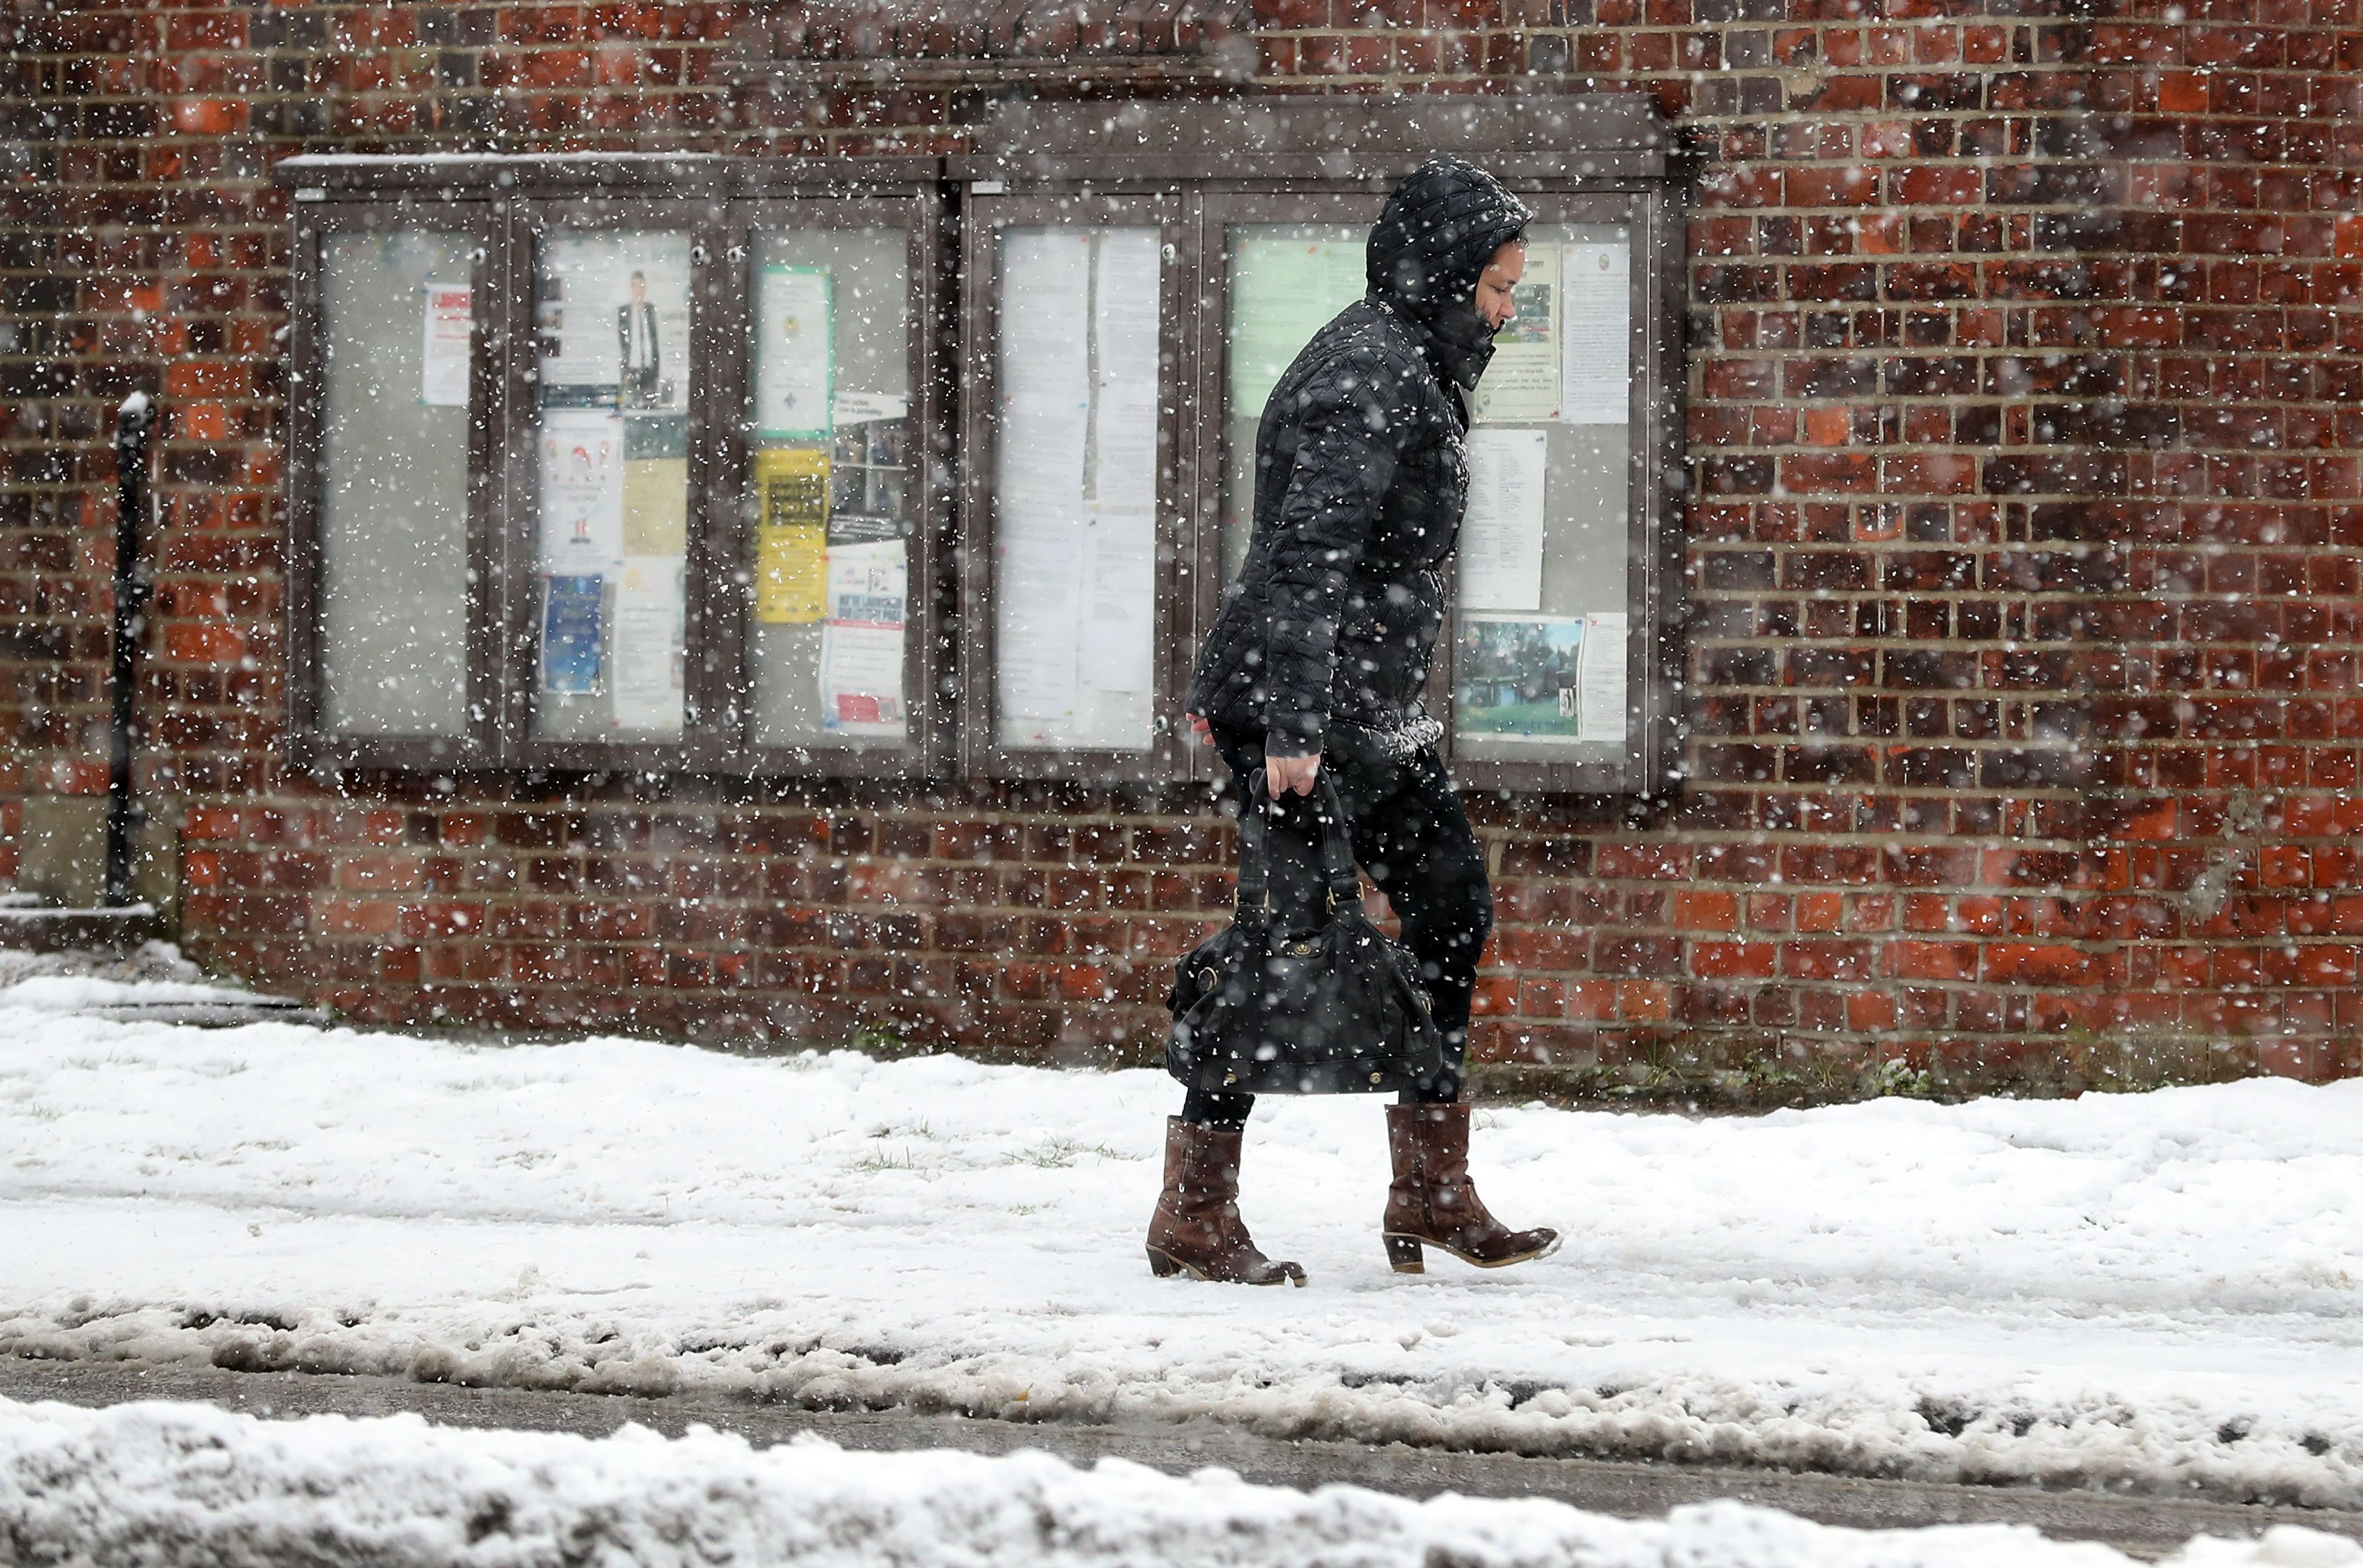 Commuters Face Another Day Of Pain After Britain Experiences The Coldest Night Of The